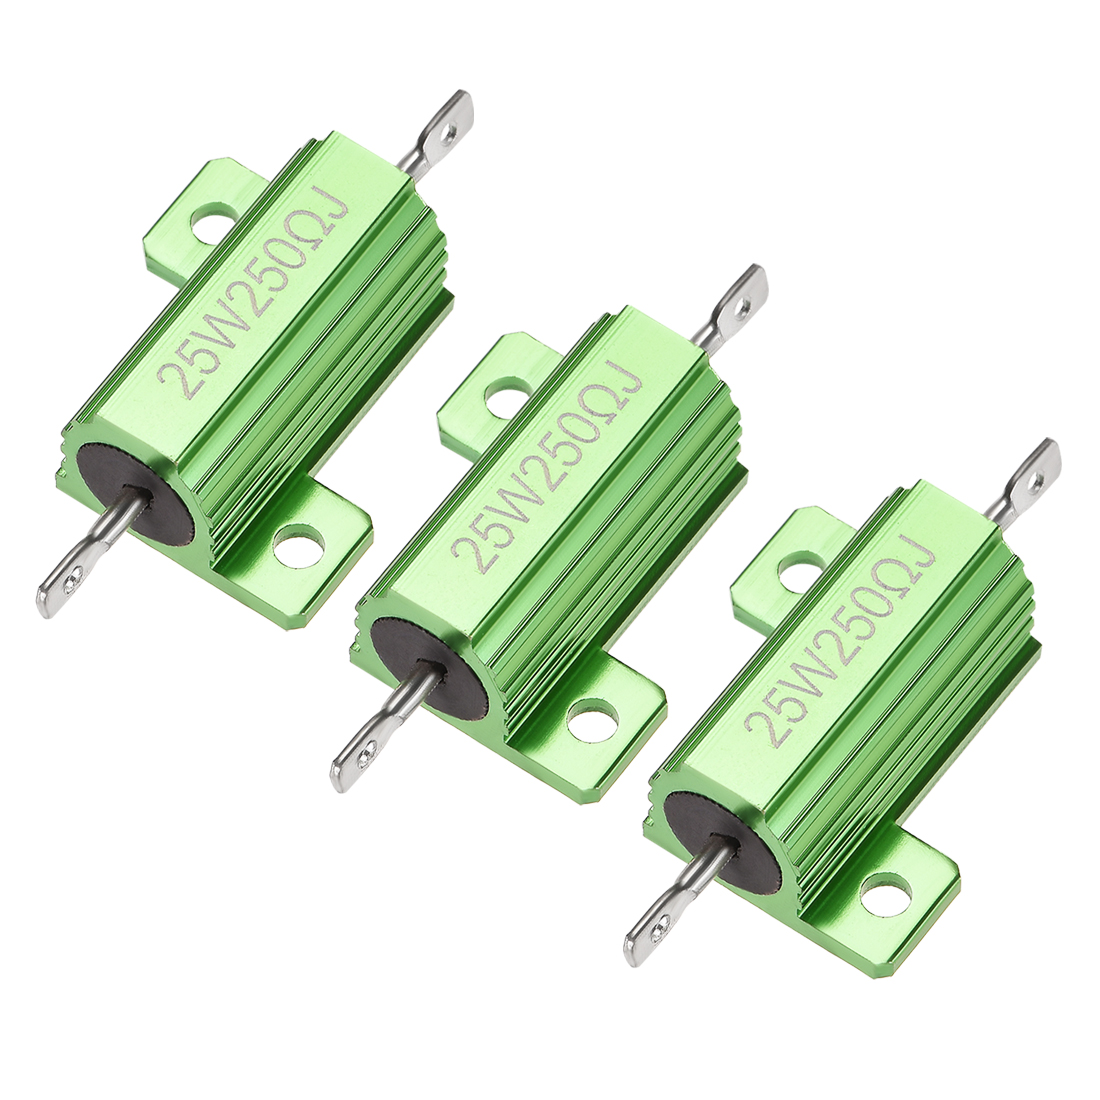 25W 250 Ohm 5% Aluminum Housing Resistor Wirewound Resistor Green Tone 3 Pcs